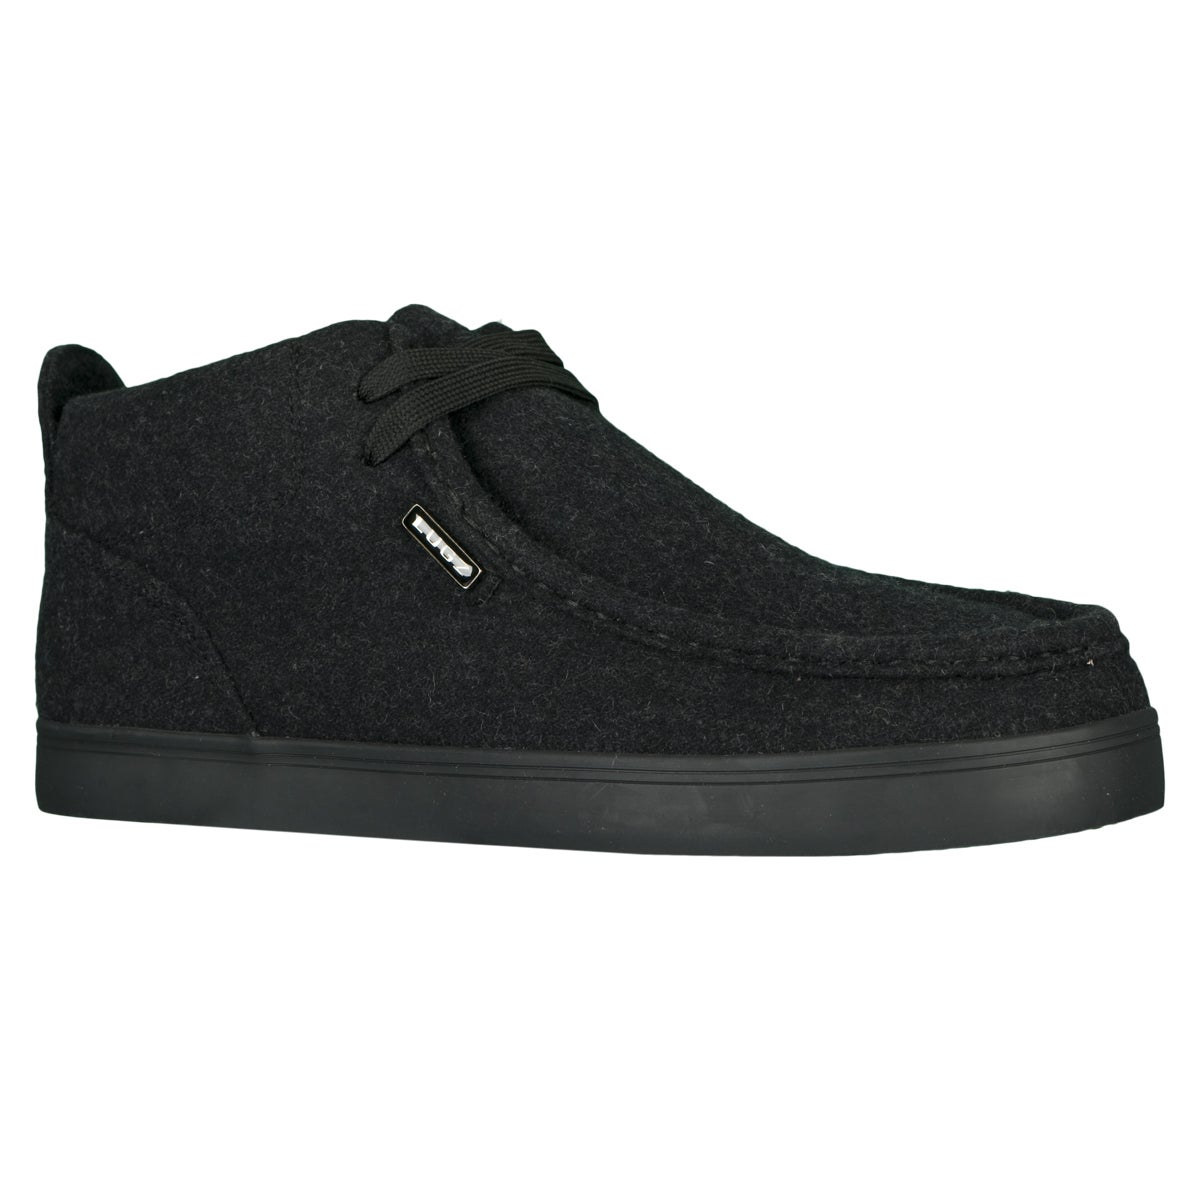 Lugz Men's Strider Peacoat Shoe